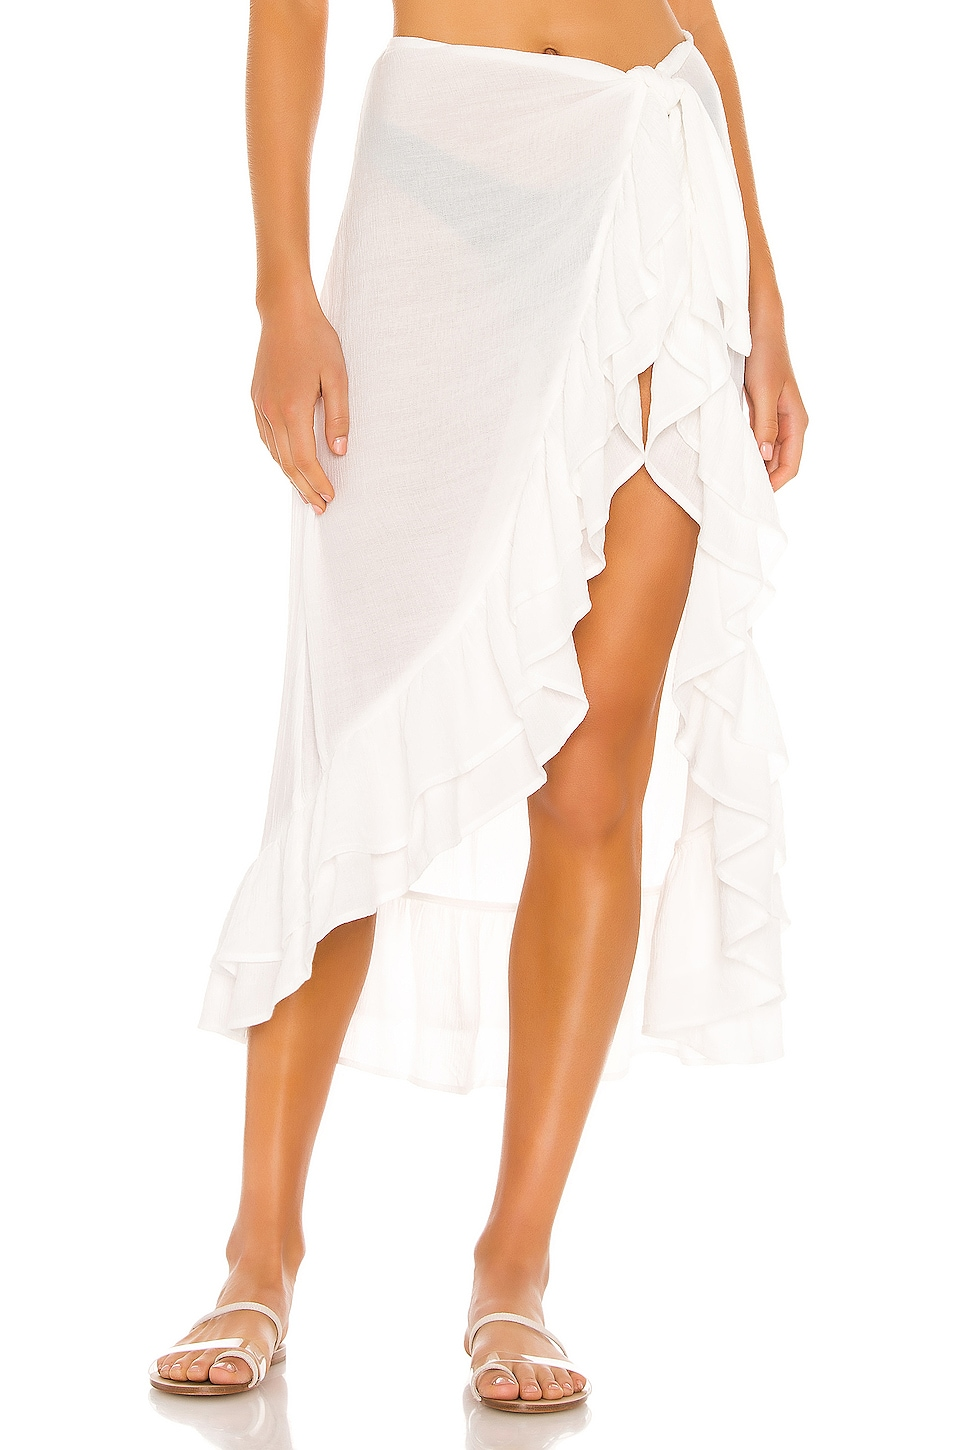 lovewave Lakeview Sarong in White